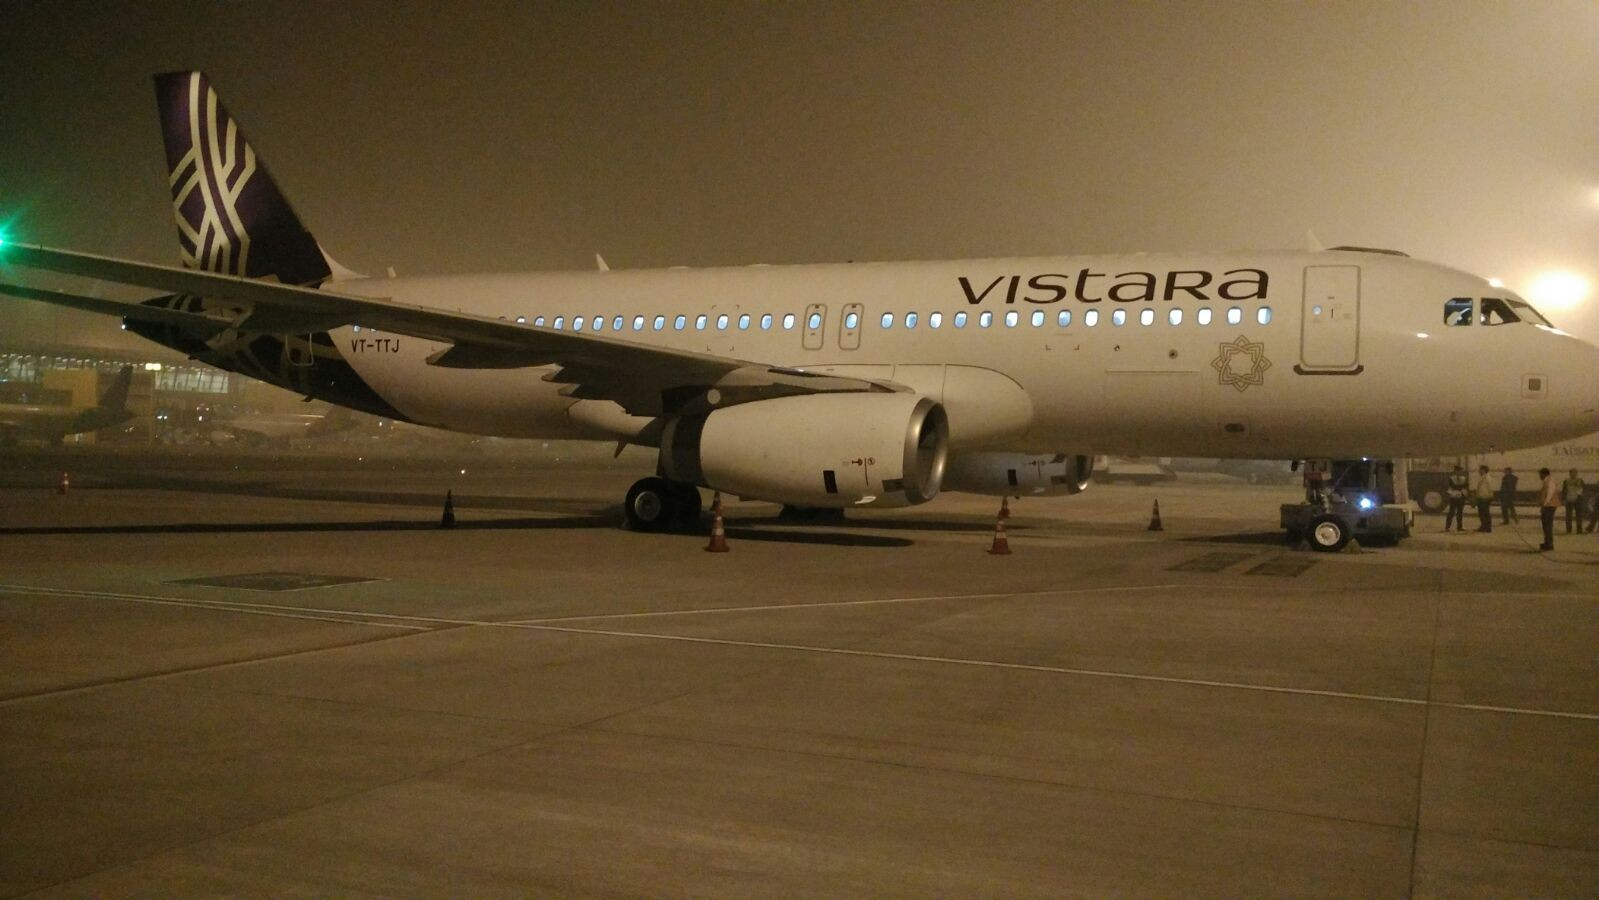 9th A-320 of Vistara Airlines